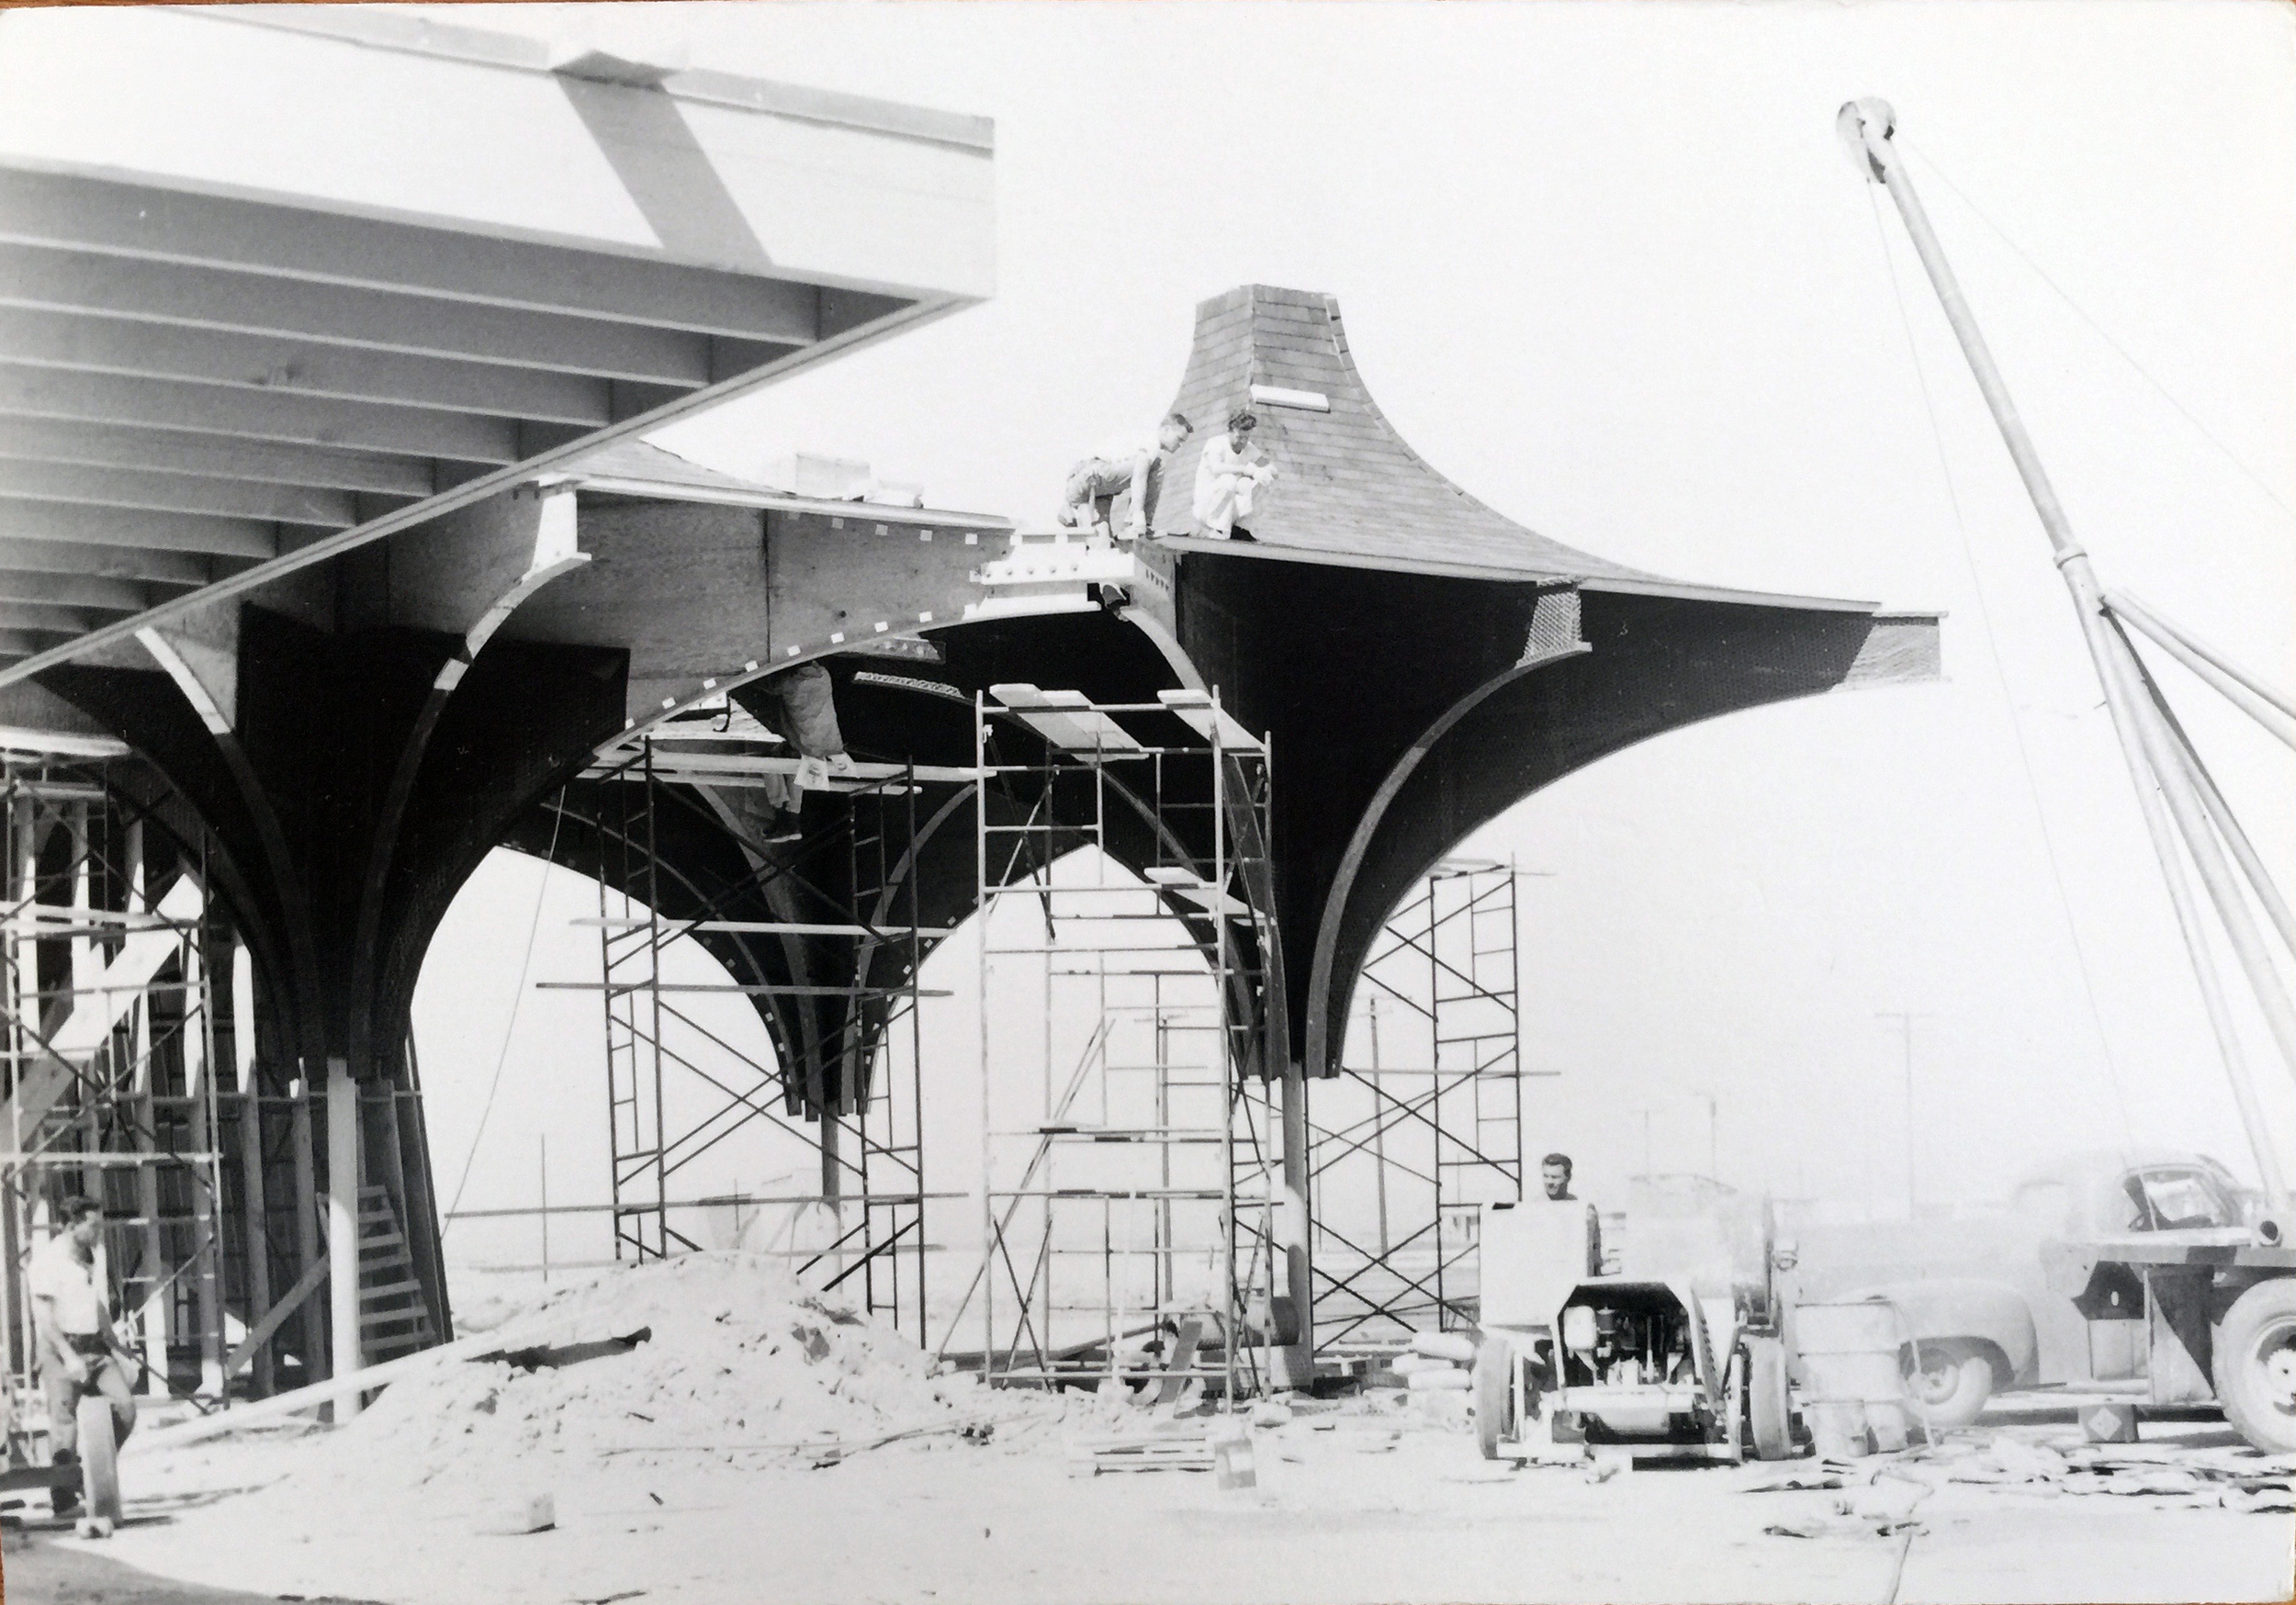 Smith and Williams, Architects and Engineers. Congregational Church, California City. 1962.Architecture and Design Collection, University Art Museum, UCSB.